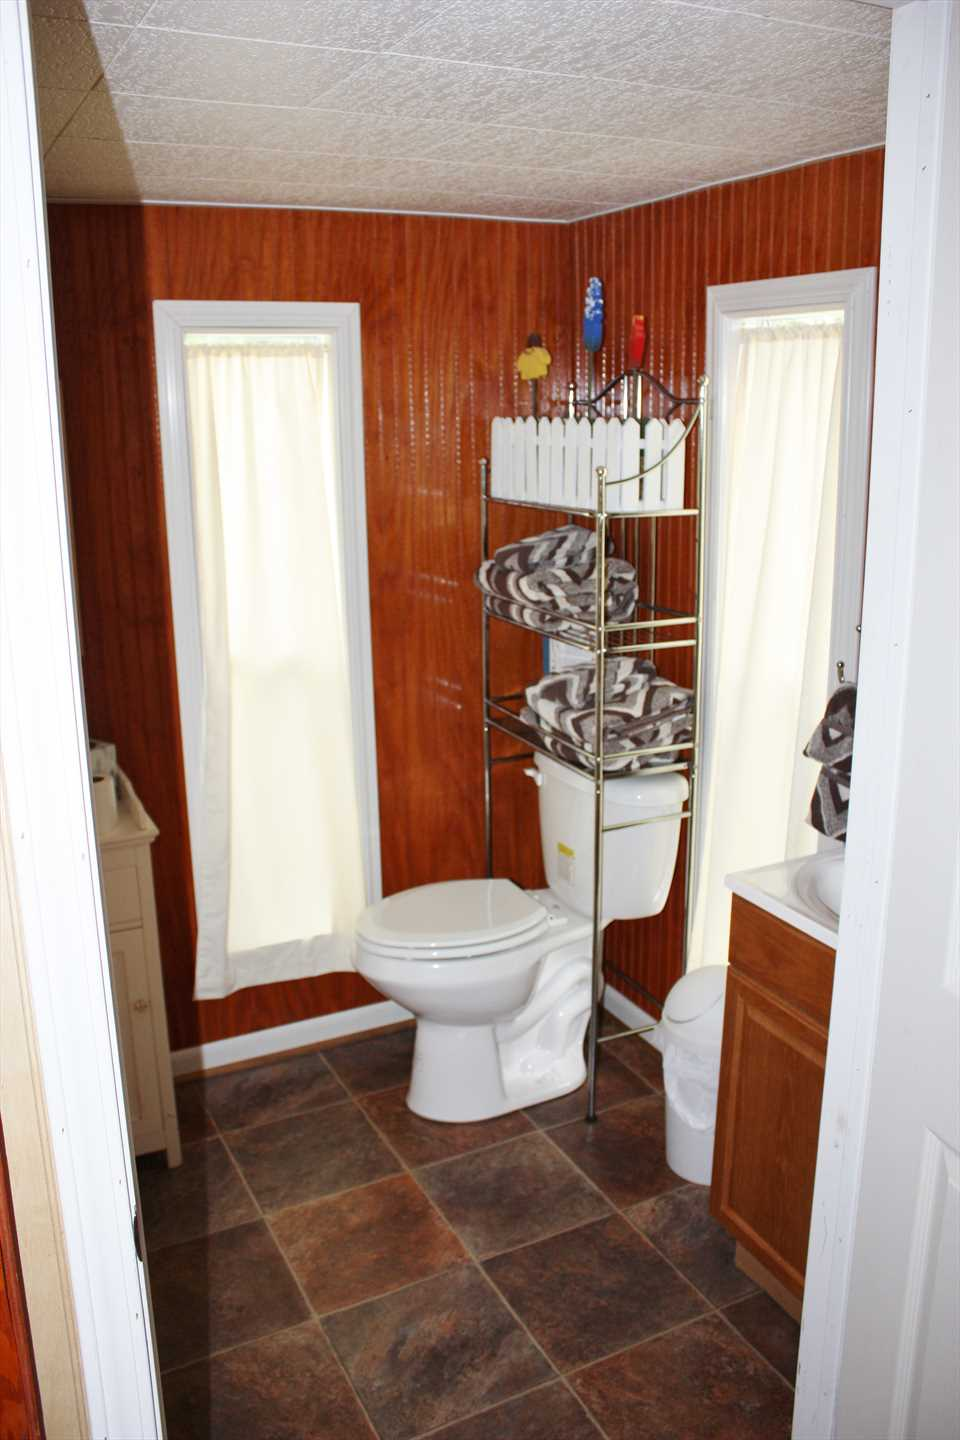 The cabin includes a half-bath, and the full bath in the main house has a tub and shower combo. Fluffy bath and bed linens are included for all!